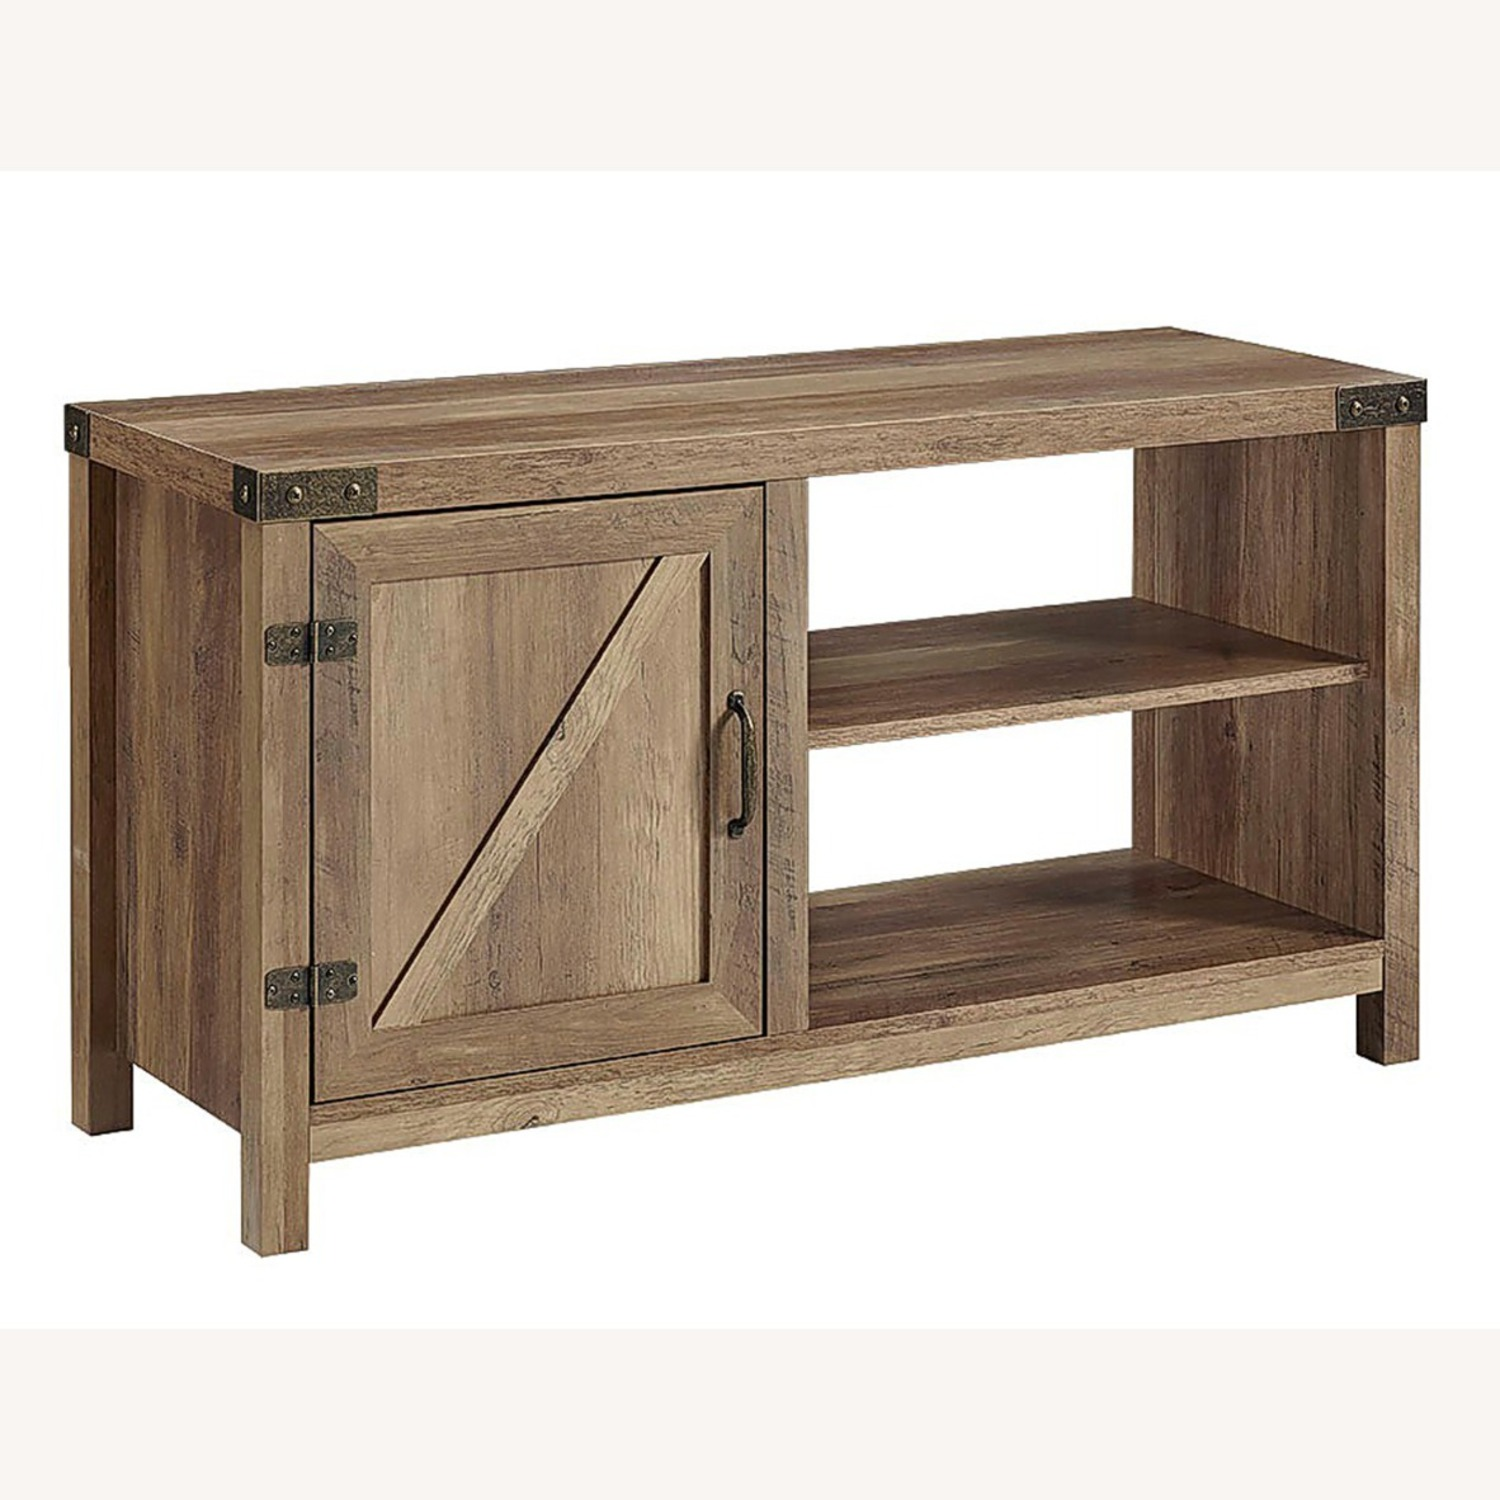 Pier 1 Rustic Farmhouse Barn Door TV Stand - image-1